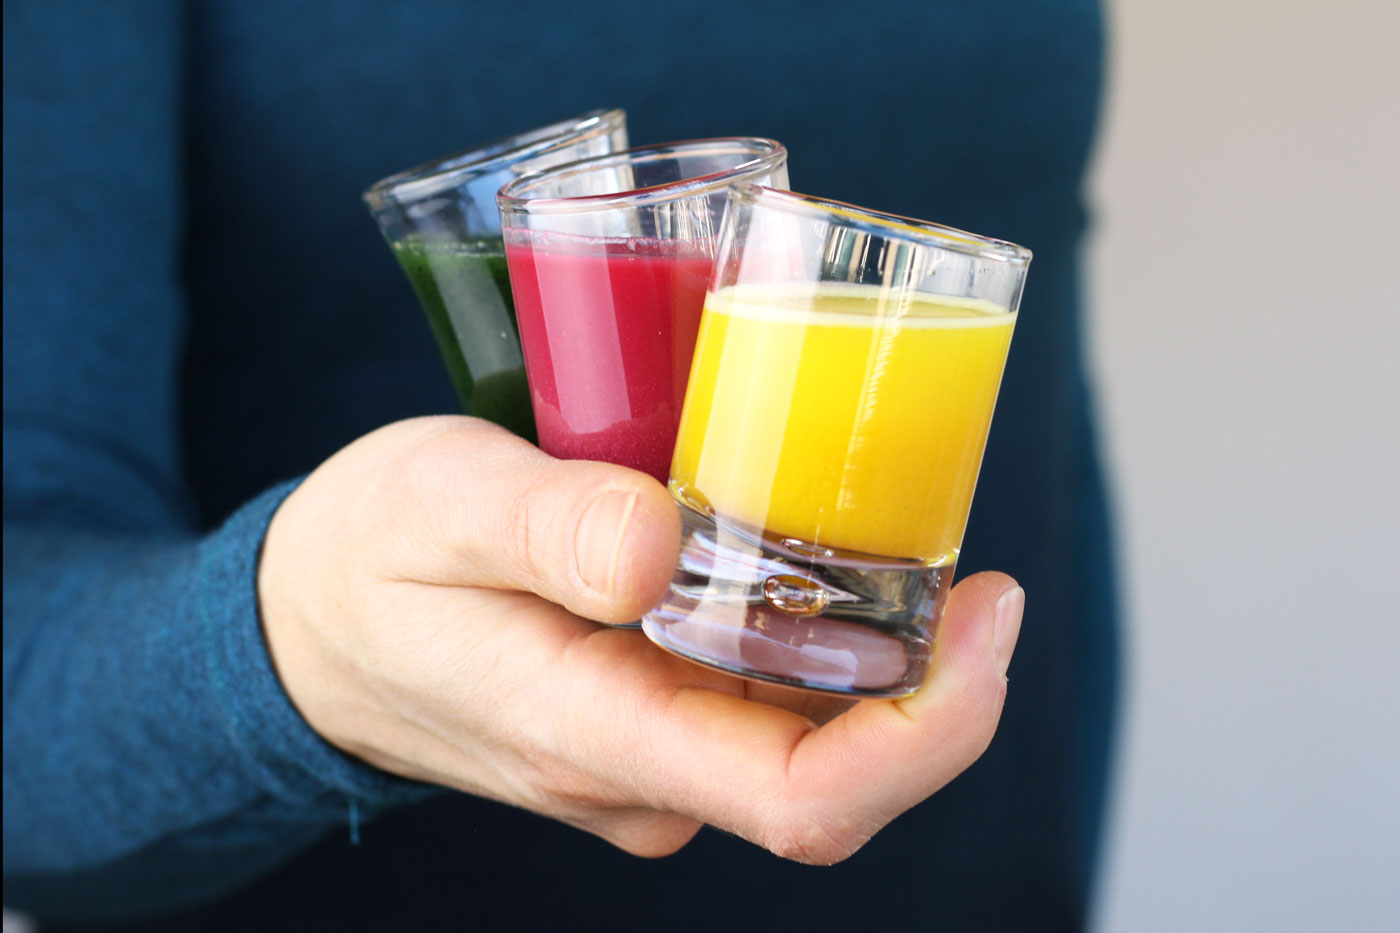 We are sharing with you three powerful homemade wellness shots to enhance your health and wellbeing.